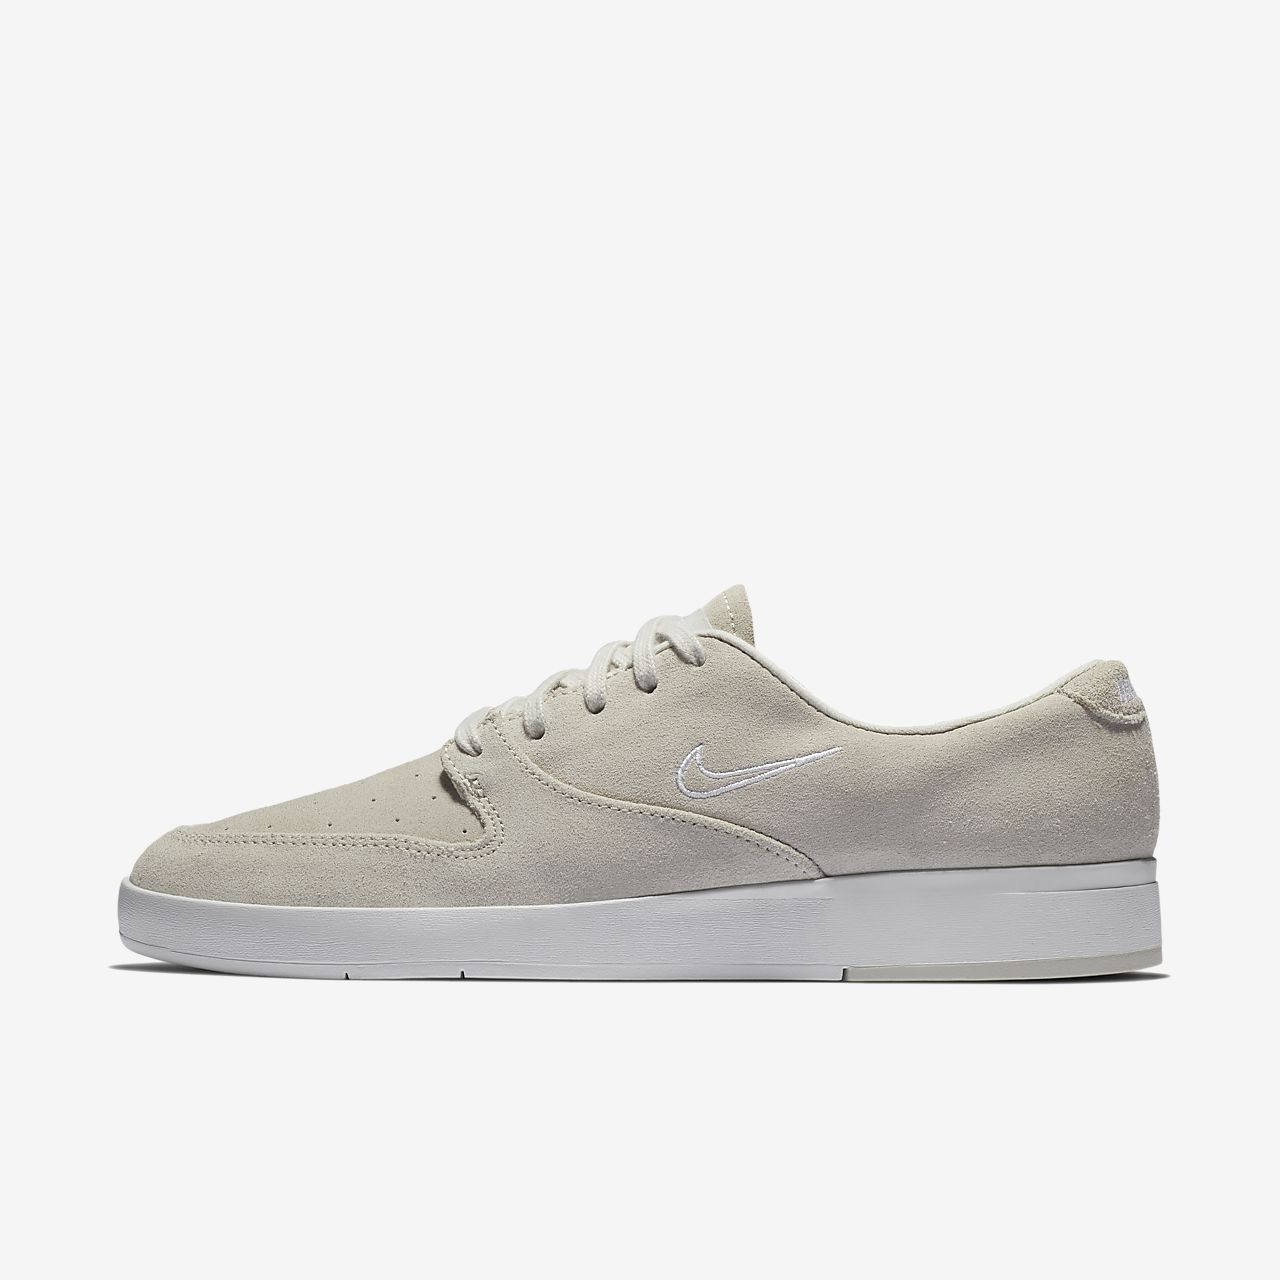 Rose Nike Chaussures Sb Collection Pour Les Hommes 1sewKz5